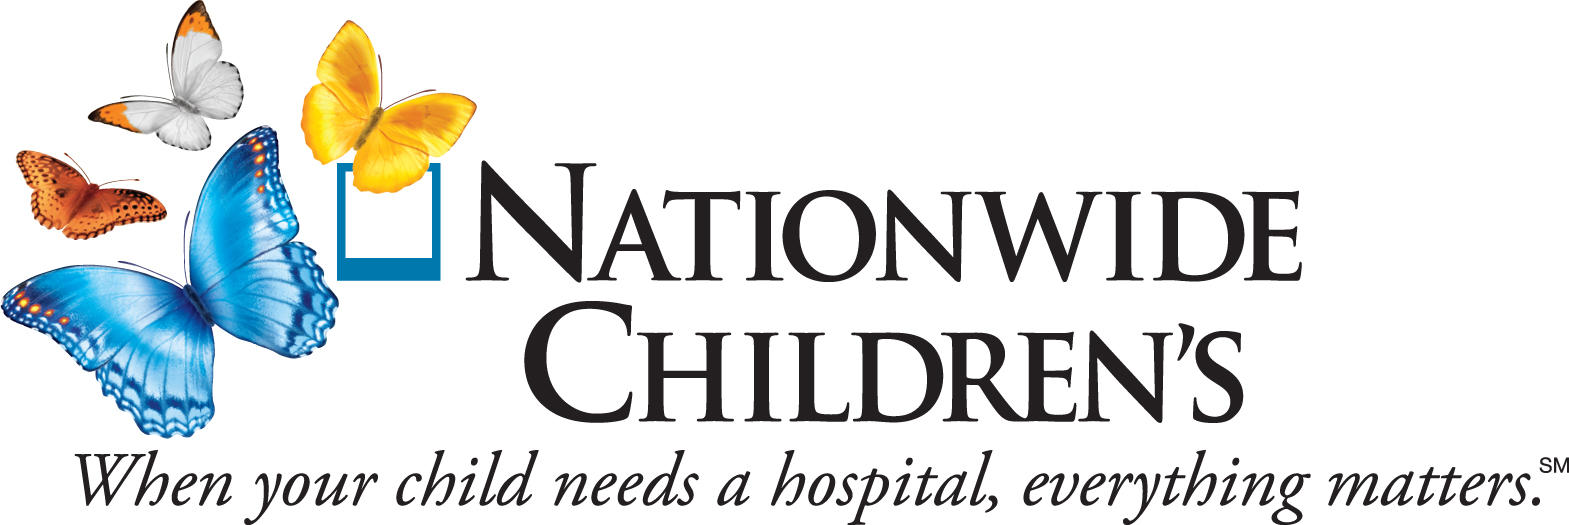 Nationwide-Childrens-Hospital-and-Research-Institute-1585417162.jpg